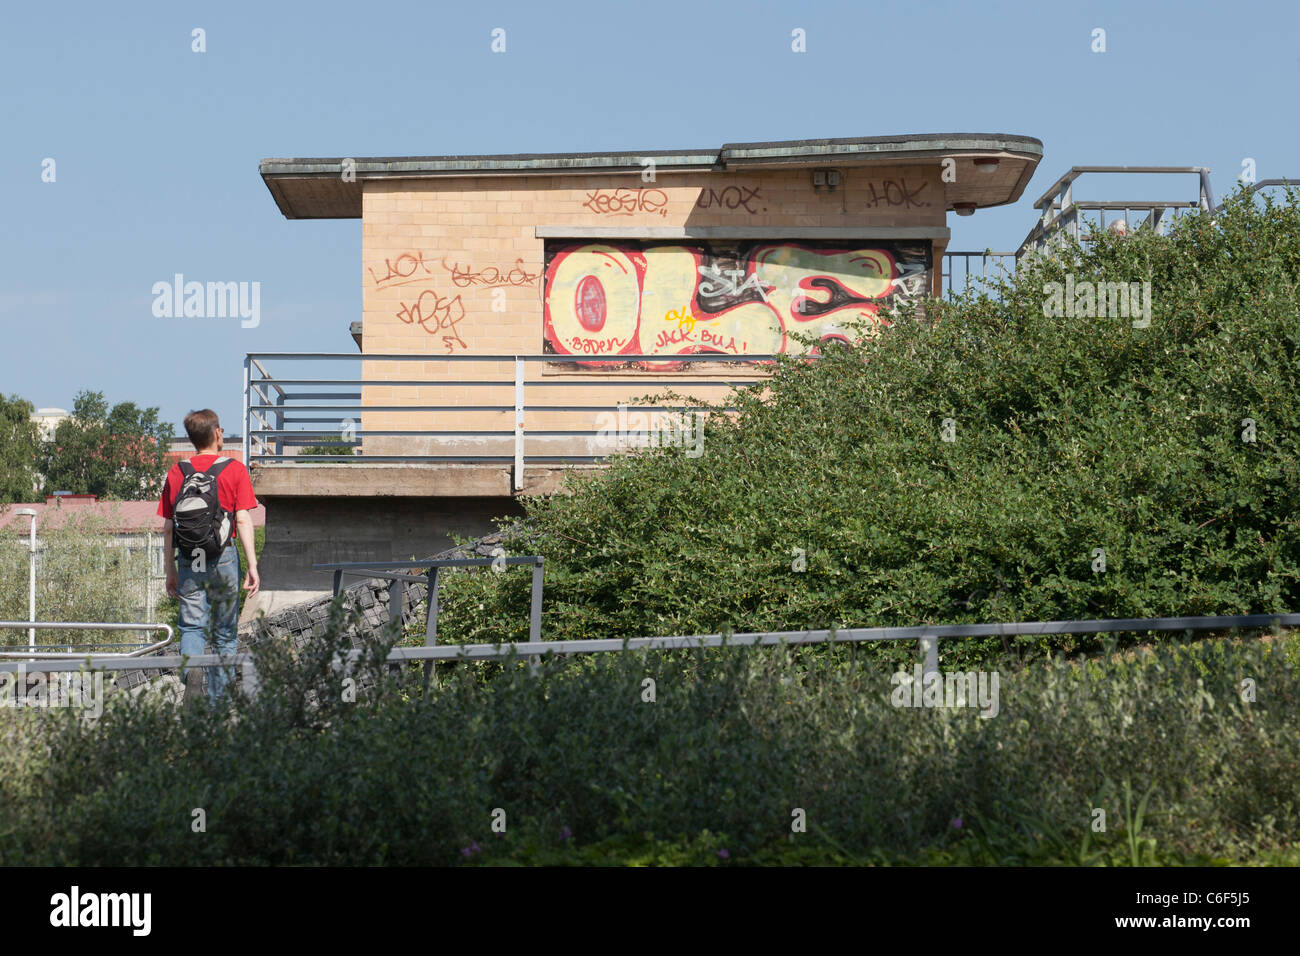 A man walking  towards the wall which is smudged with graffiti and mess. - Stock Image